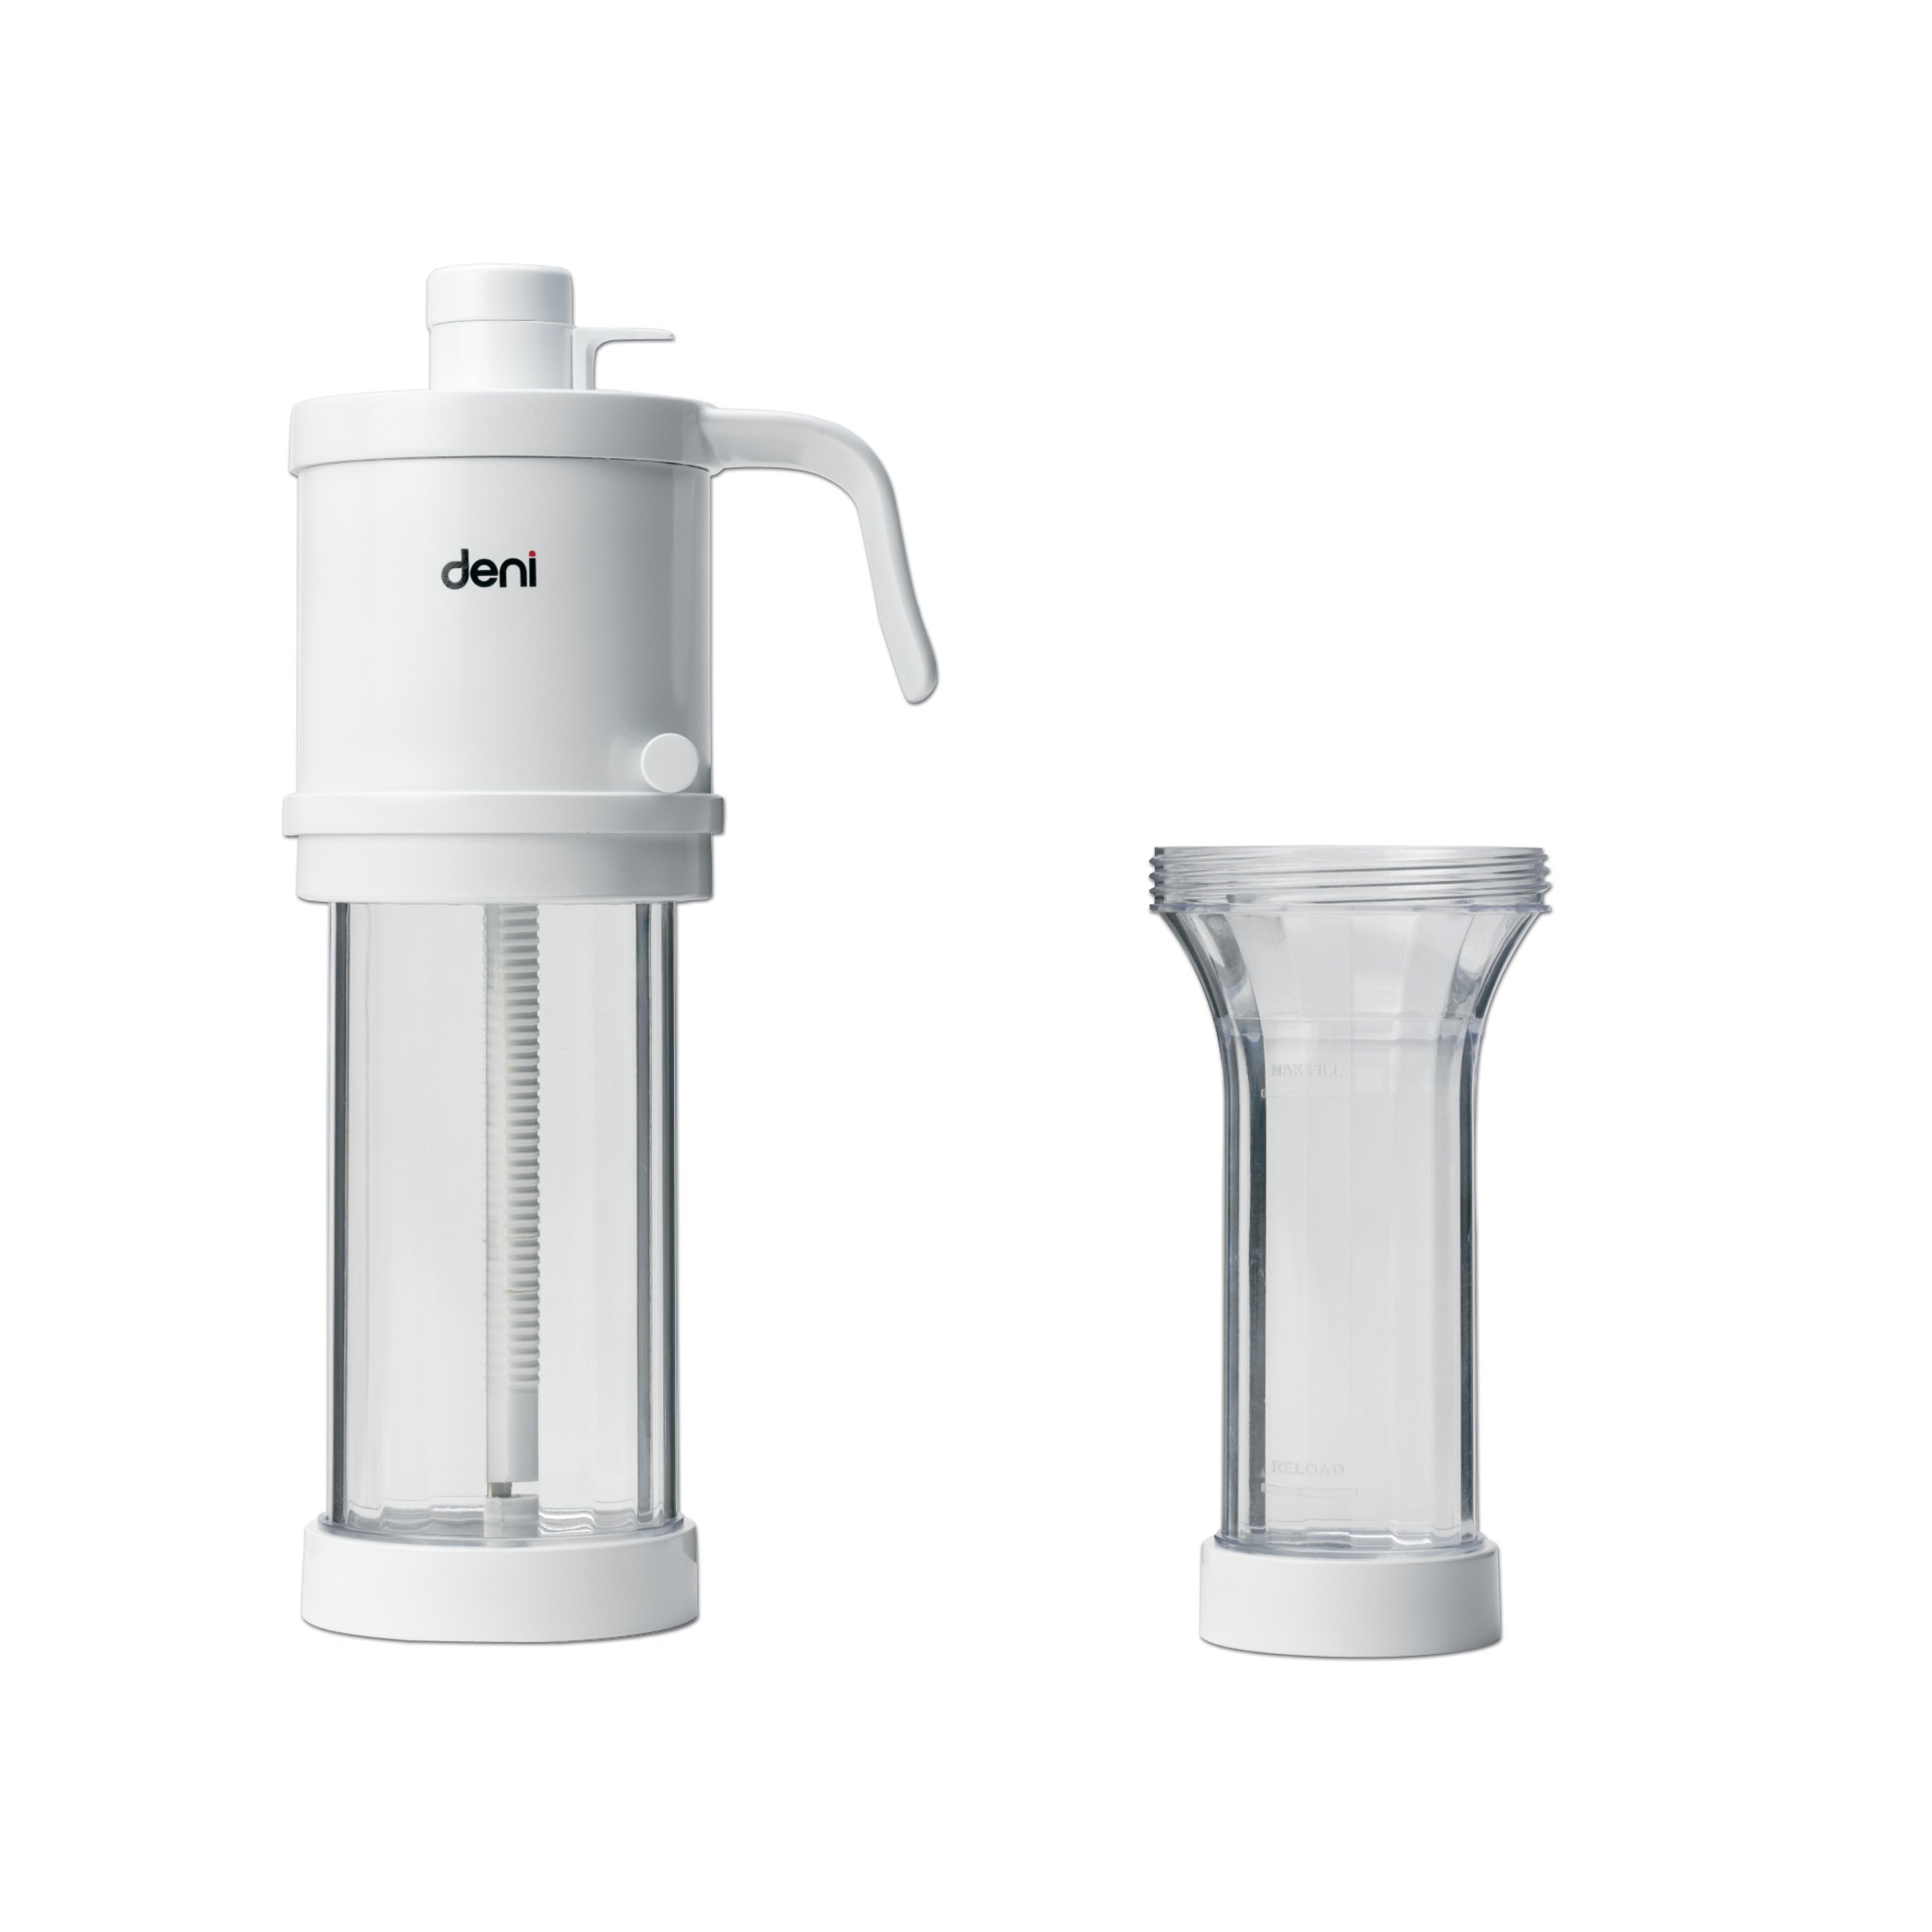 Deni 4650 Battery Operated Cookie Press